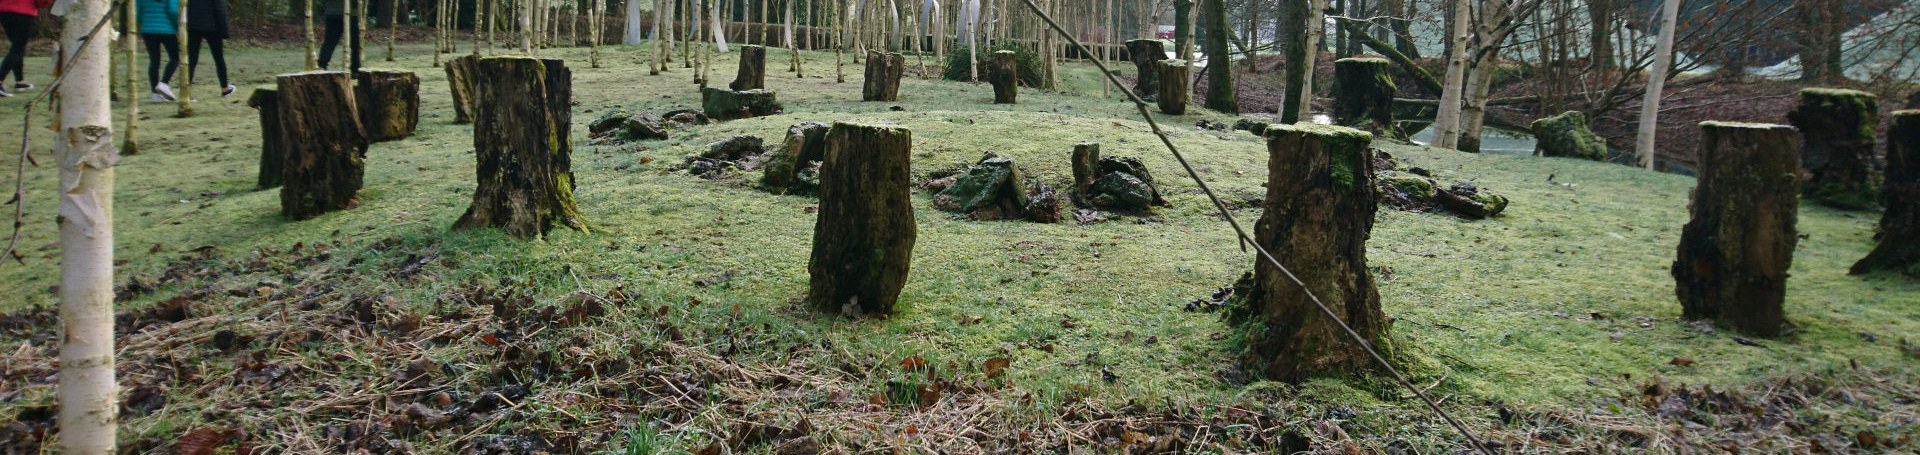 tree stumps in a circle act like seats